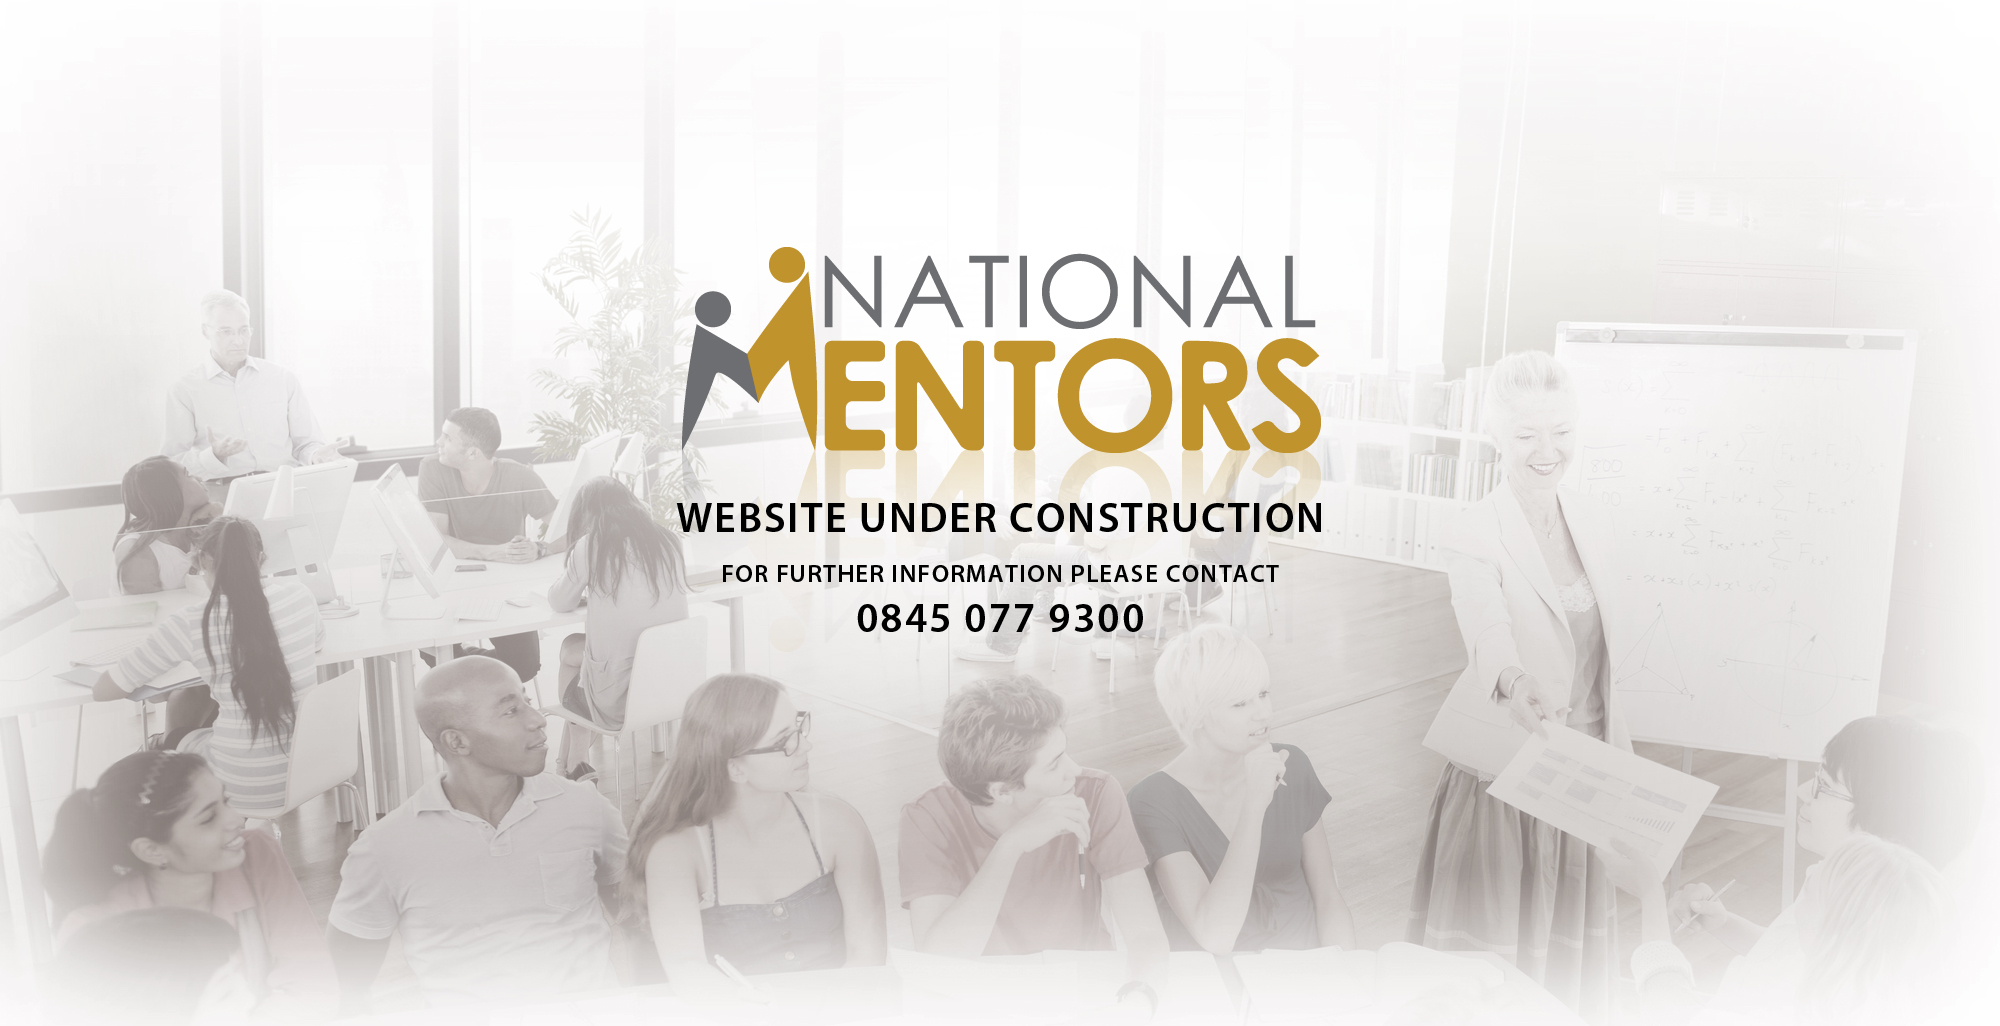 National Mentors Website Under Construction